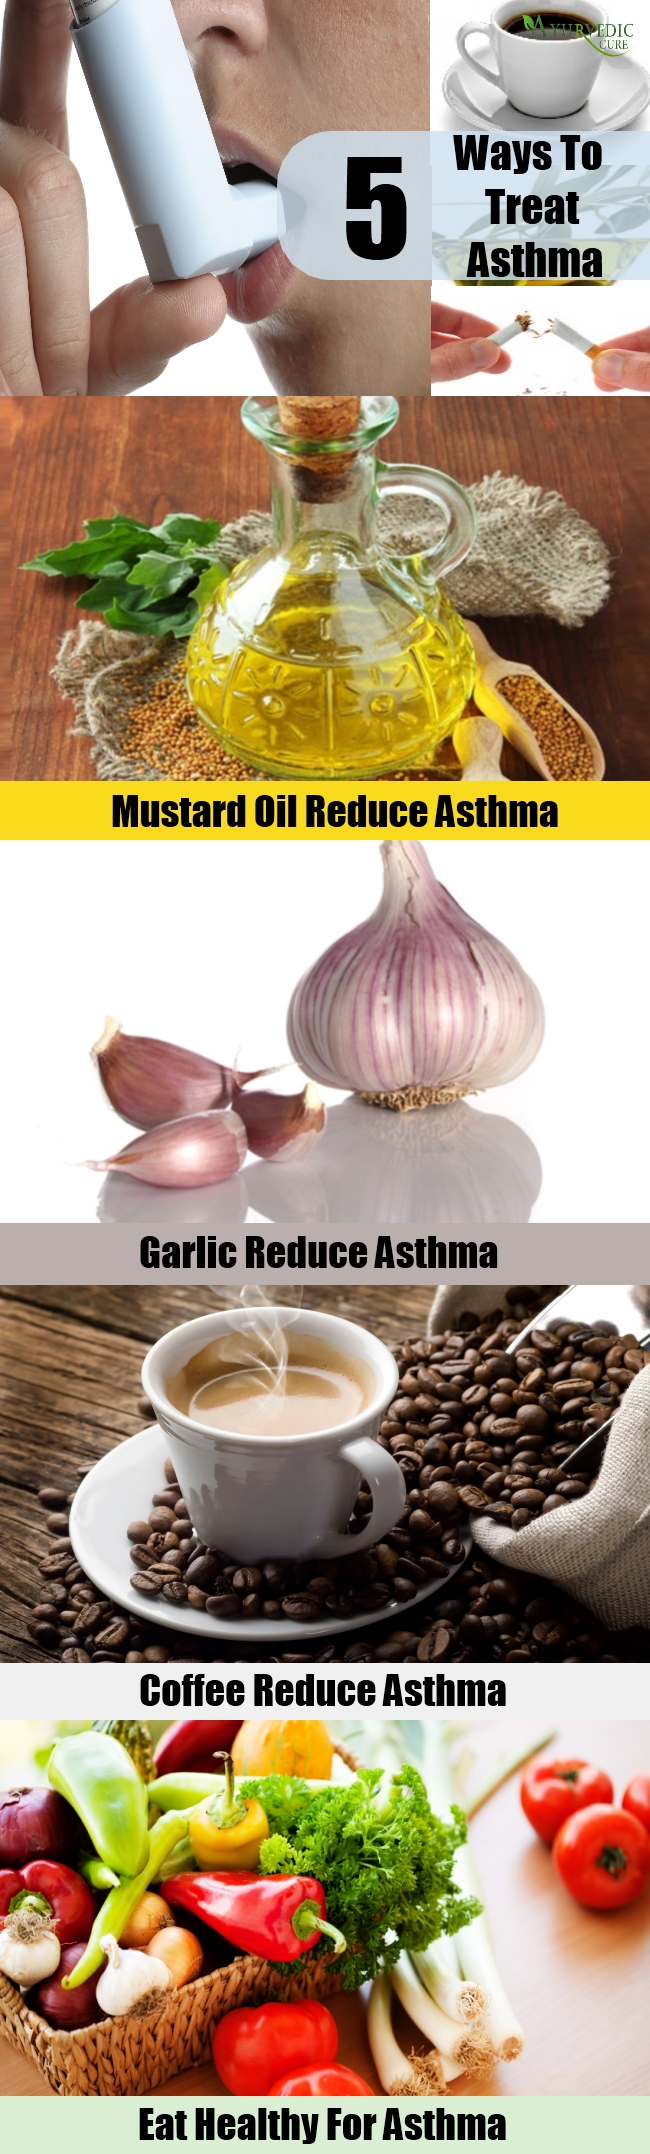 Tips On How To Treat Asthma